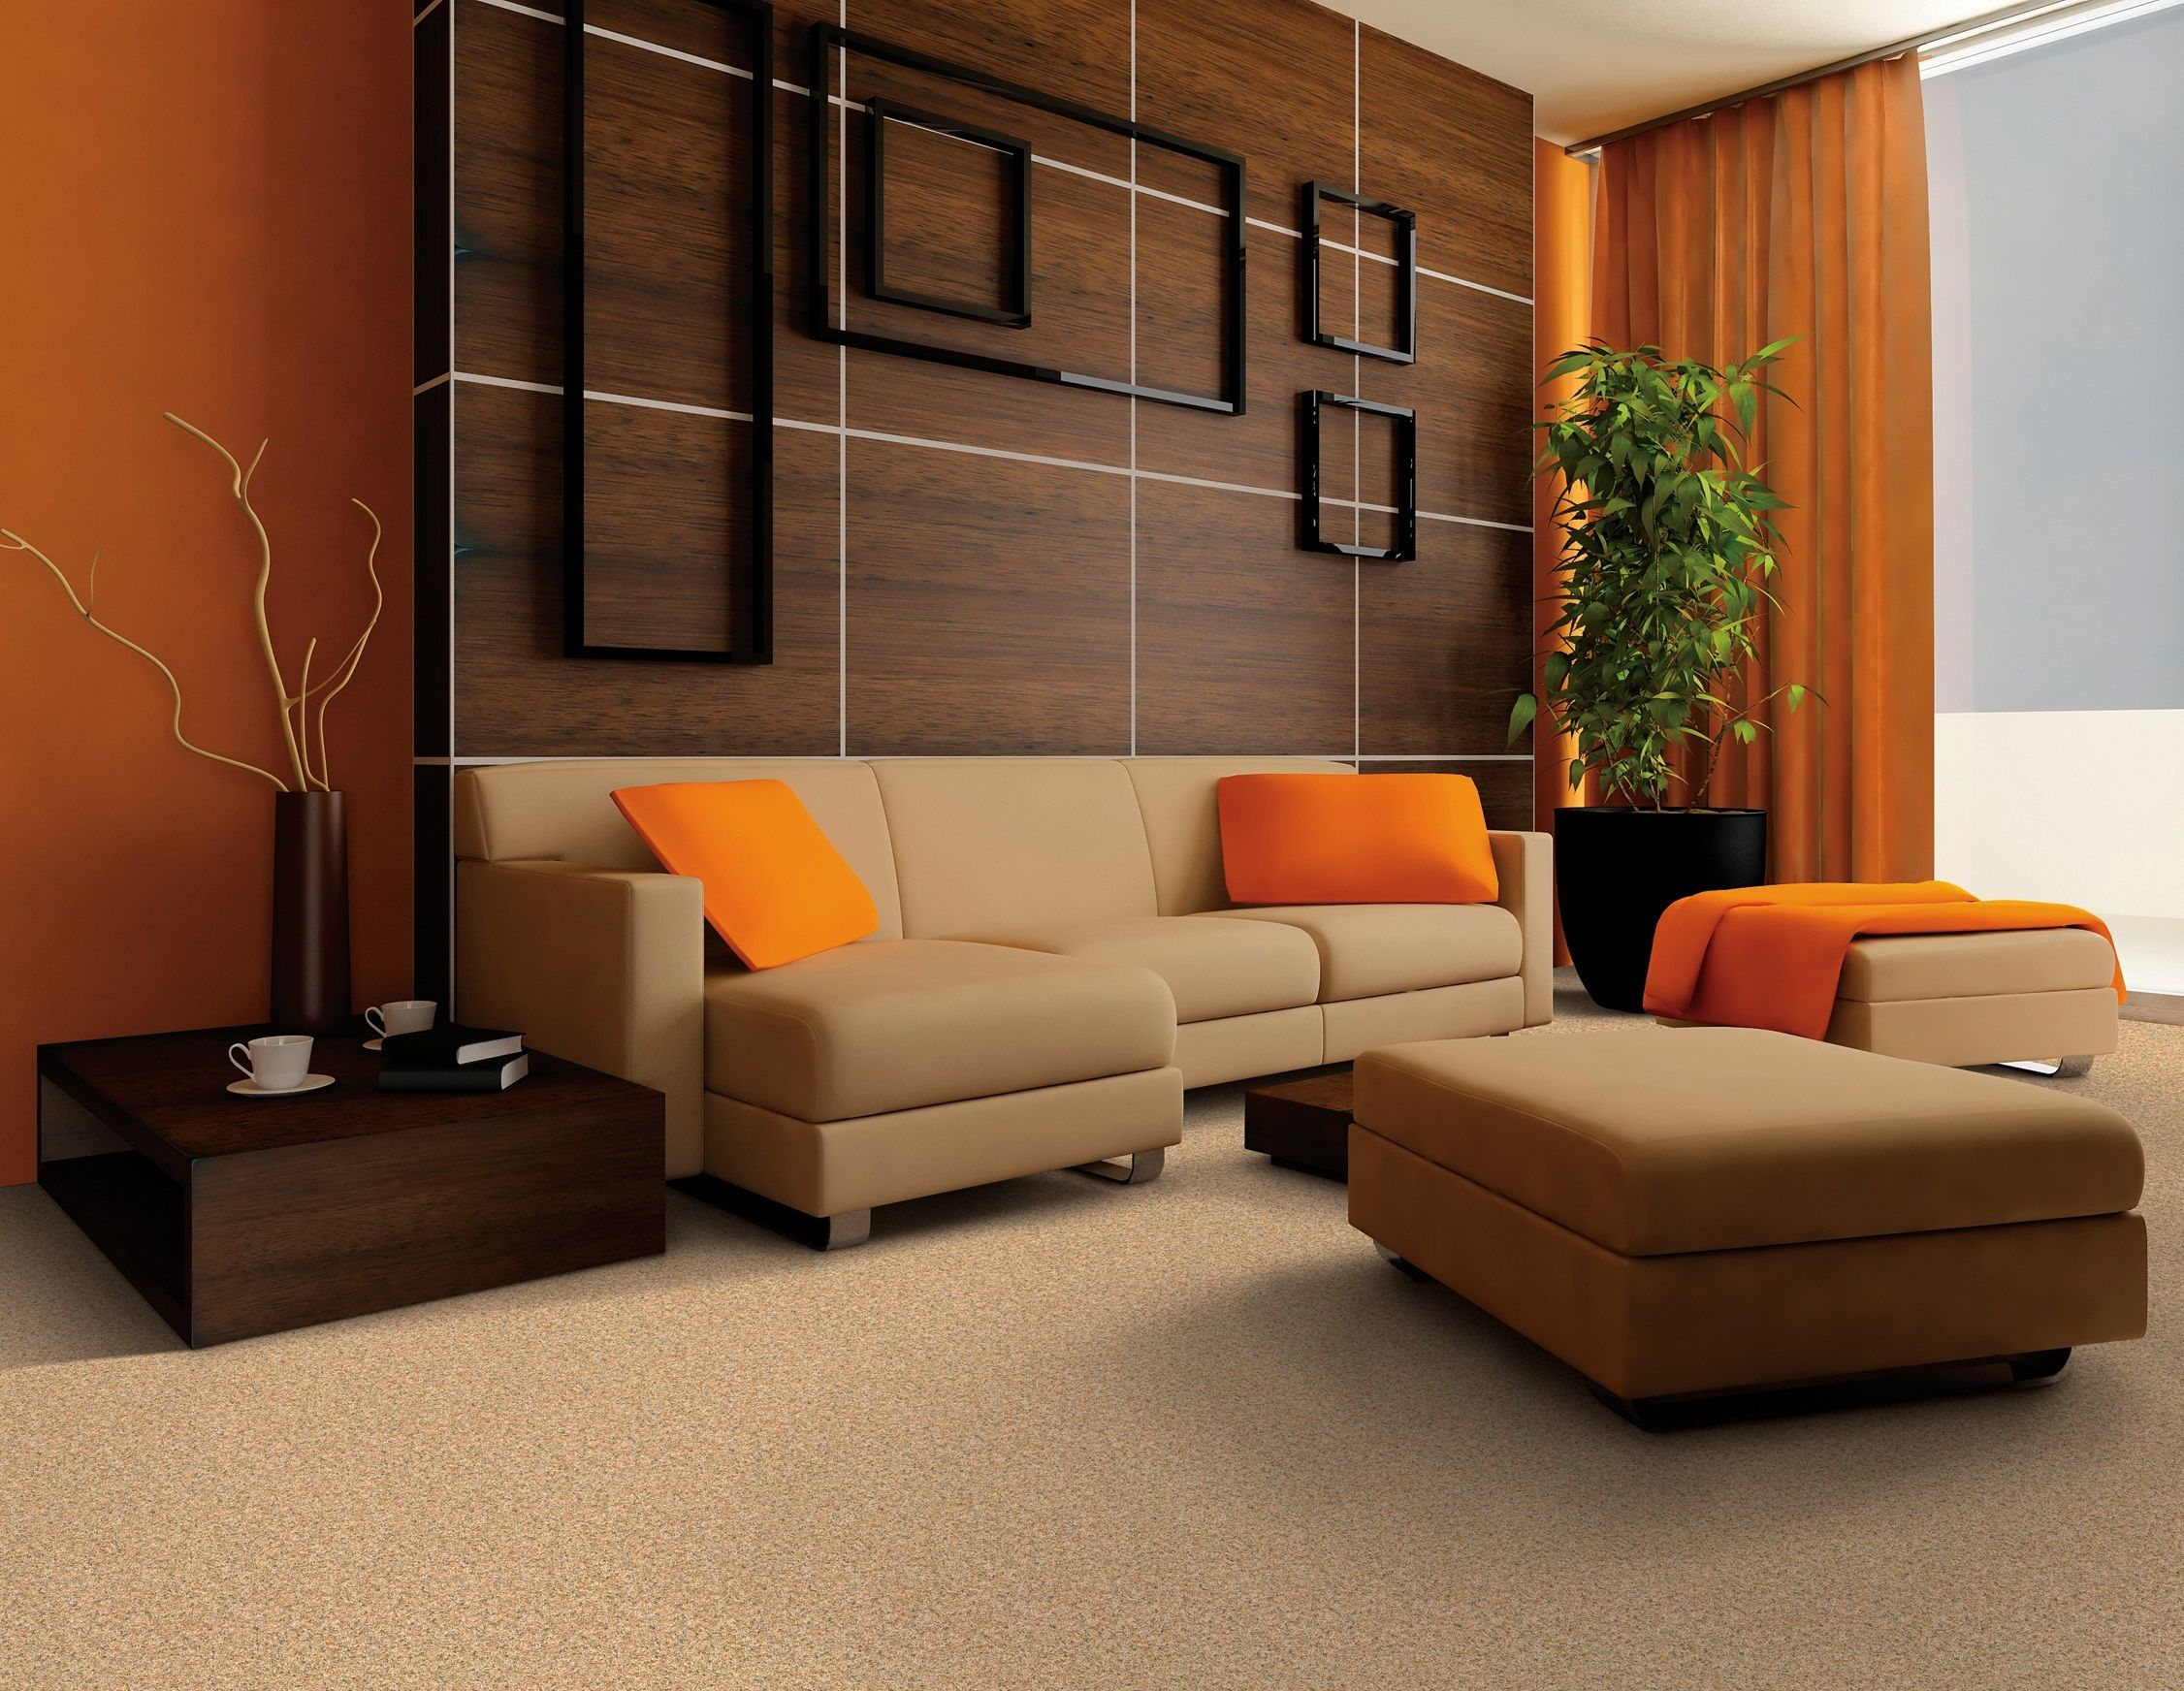 colors to brighten up a bedroom | orange, living rooms and brown walls